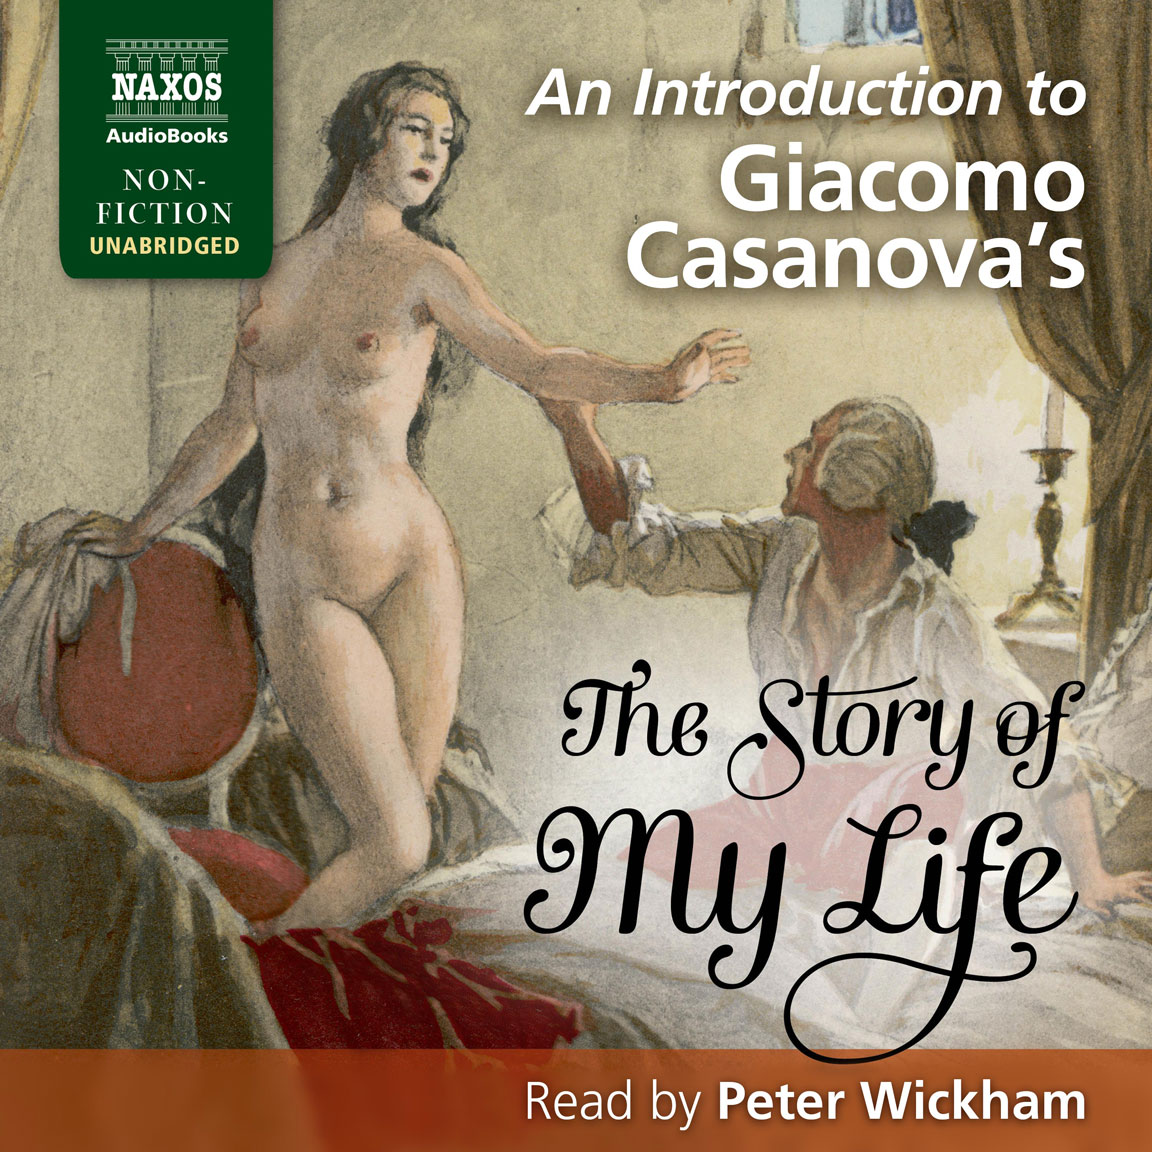 https://naxosaudiobooks.com/wp-content/uploads/2018/01/NA0297_Casanova_Podcast_cover.jpg